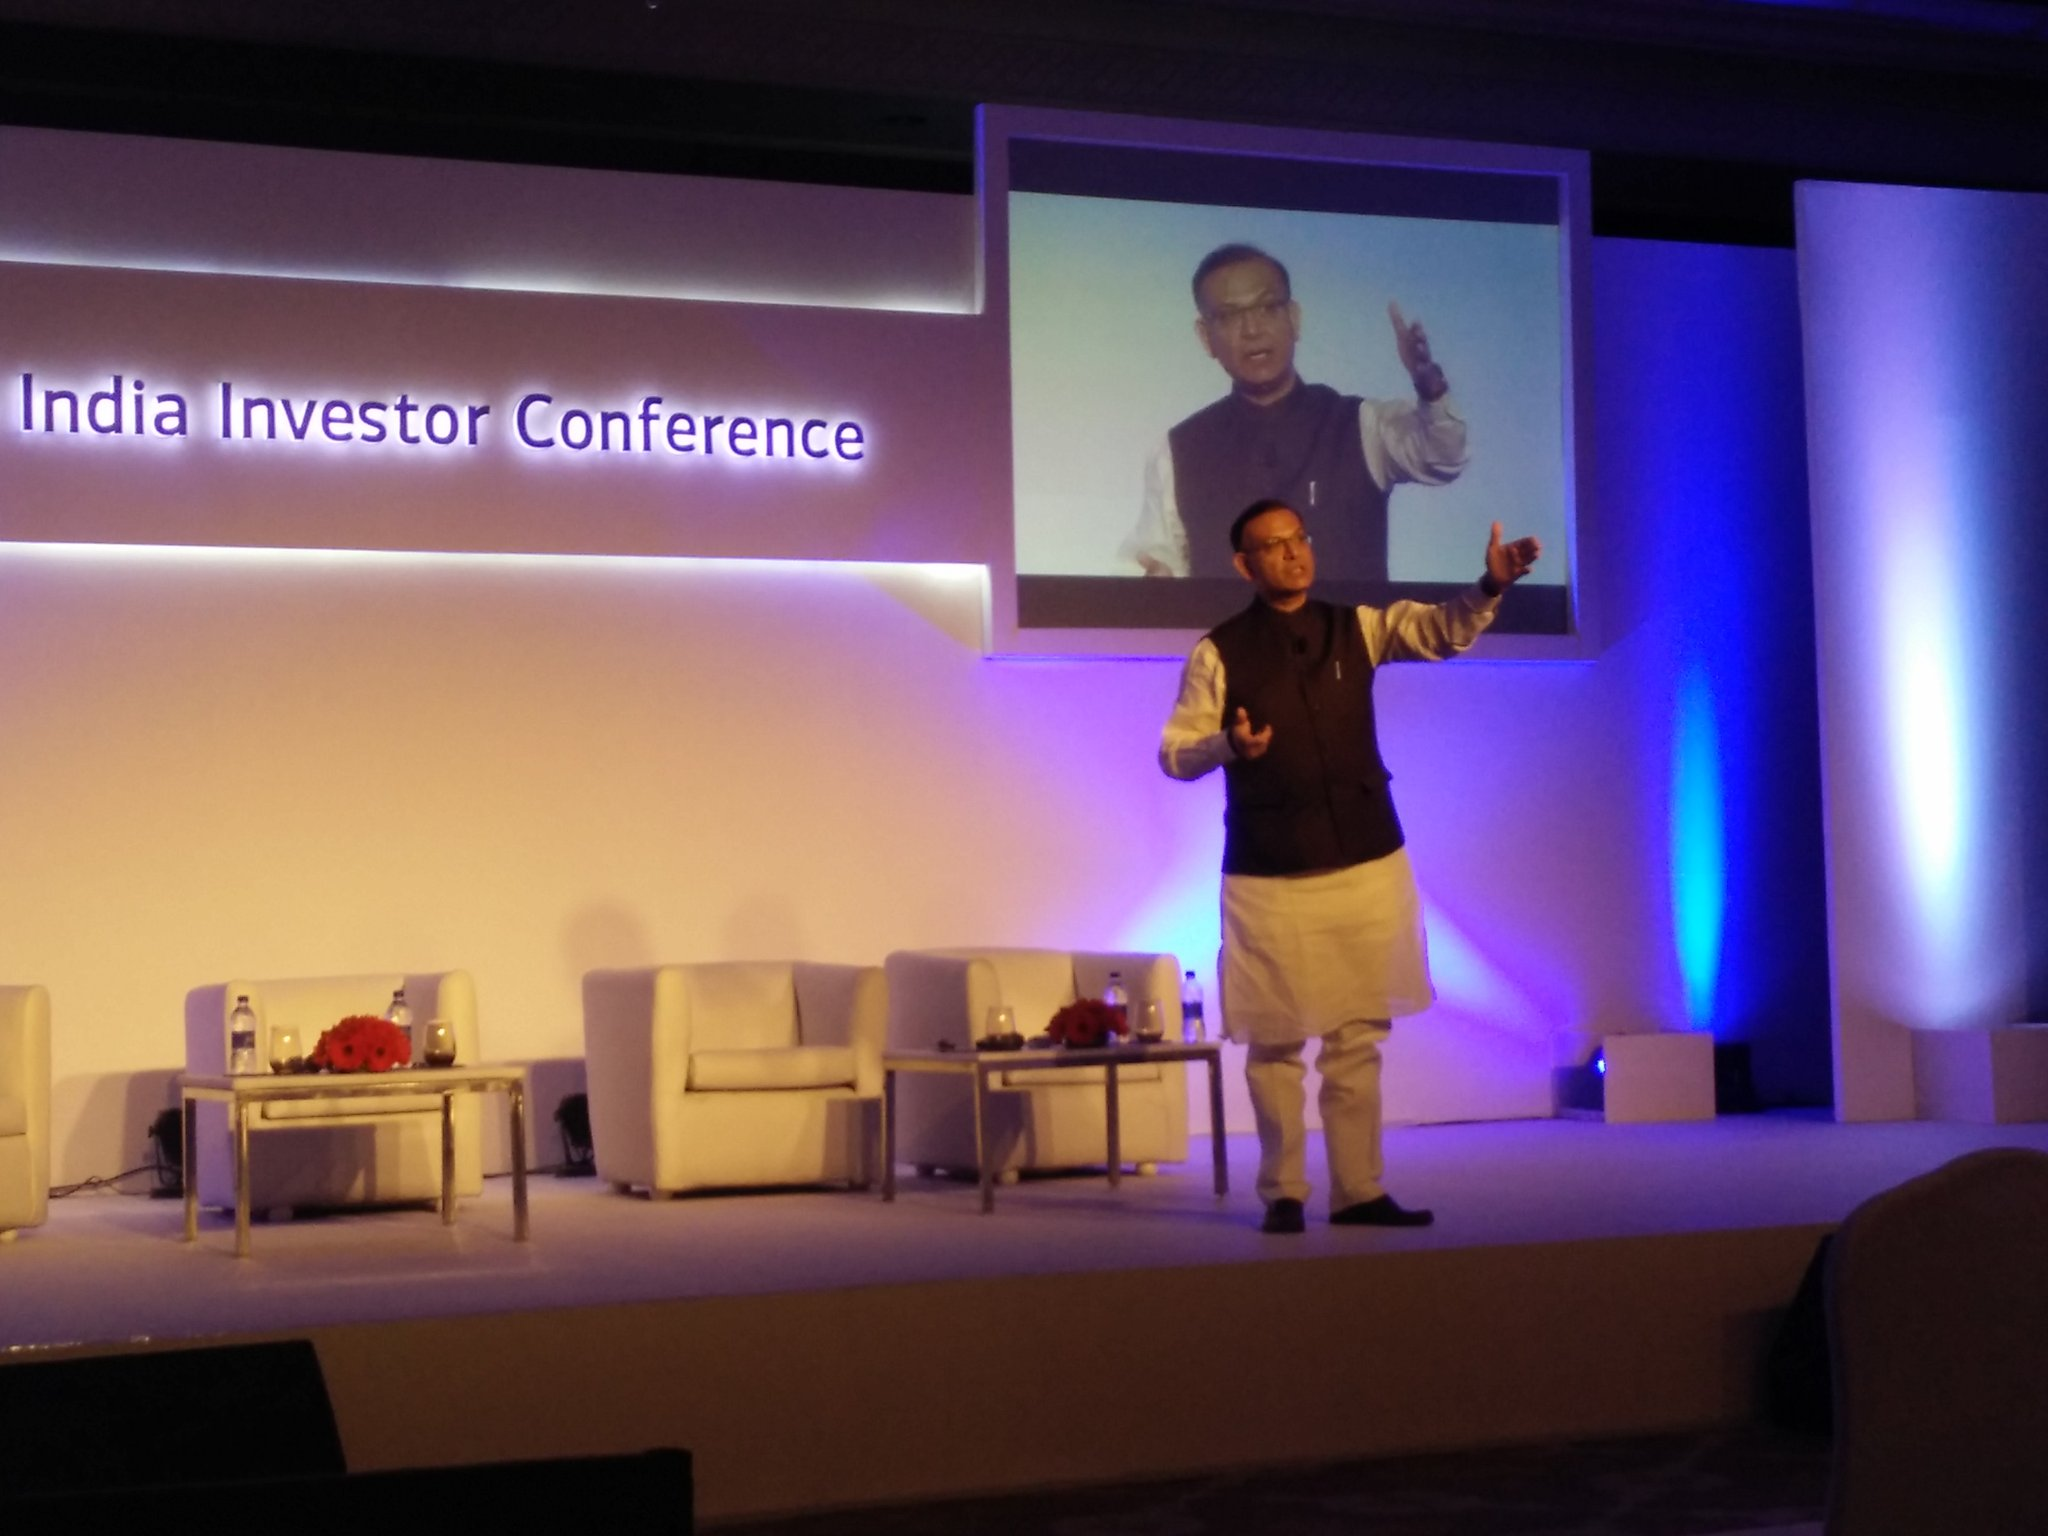 jayant sinha on addressing fiis at the merrill lynch jayant sinha on addressing fiis at the merrill lynch investor conference explained steps taken by govt to promote business